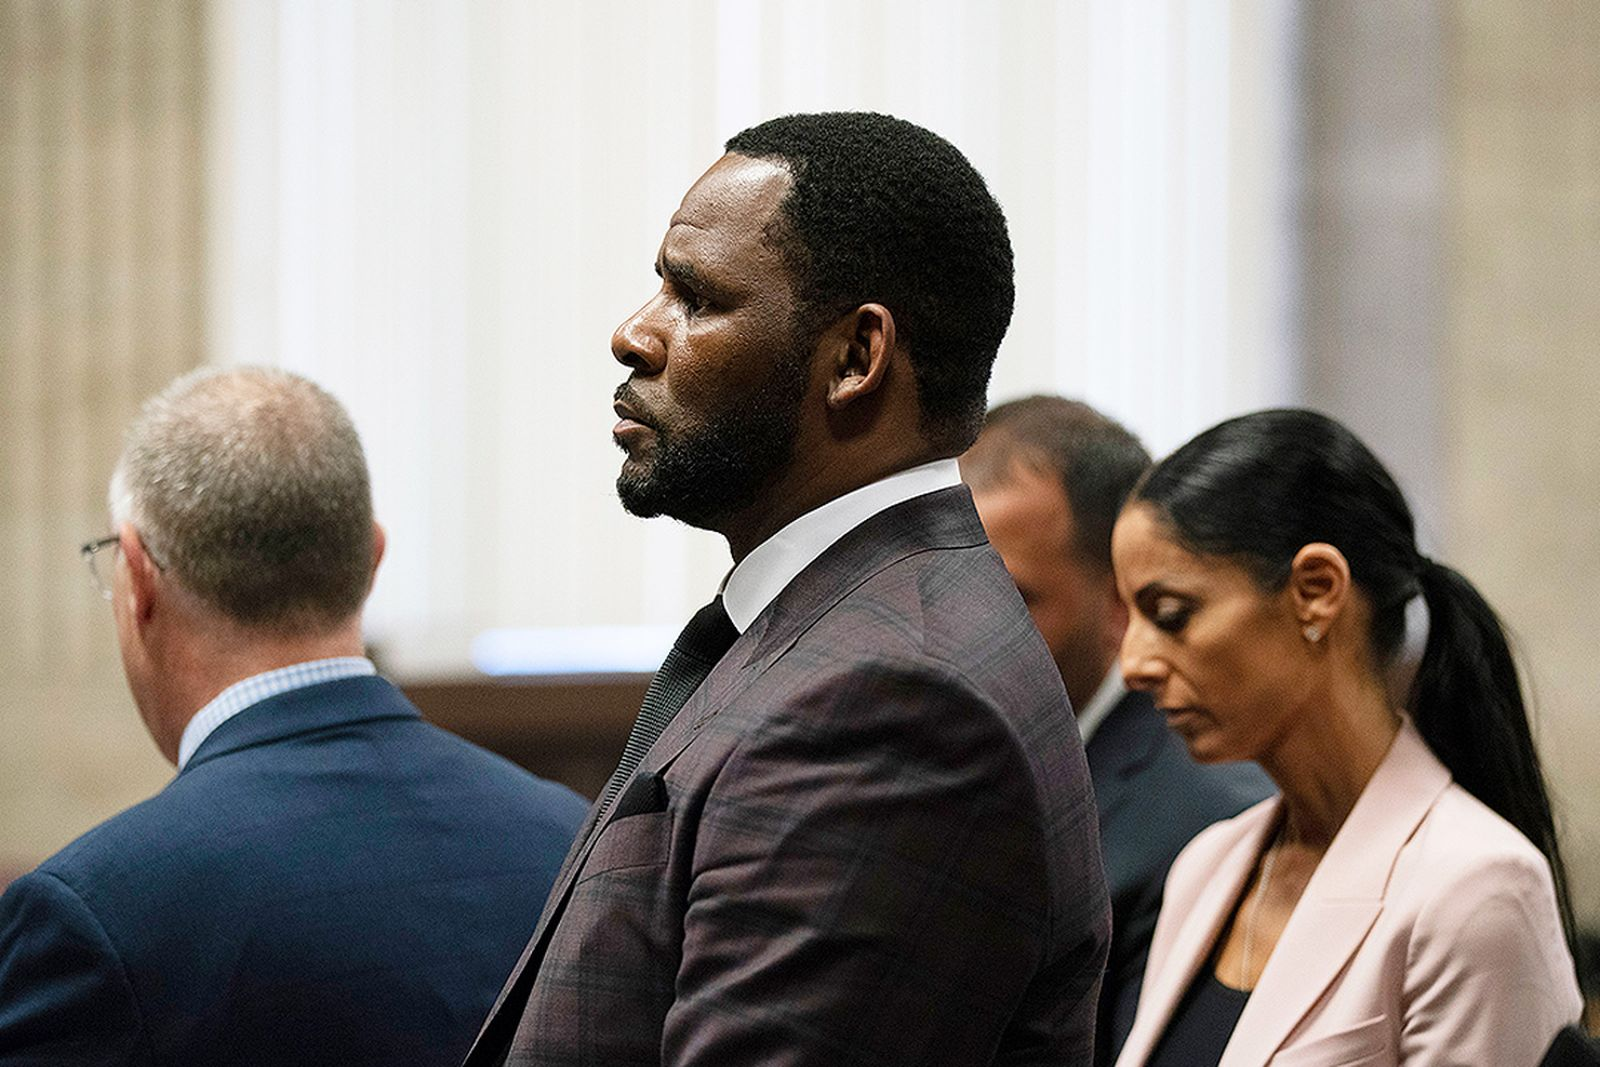 R. Kelly appears in court in Chicago